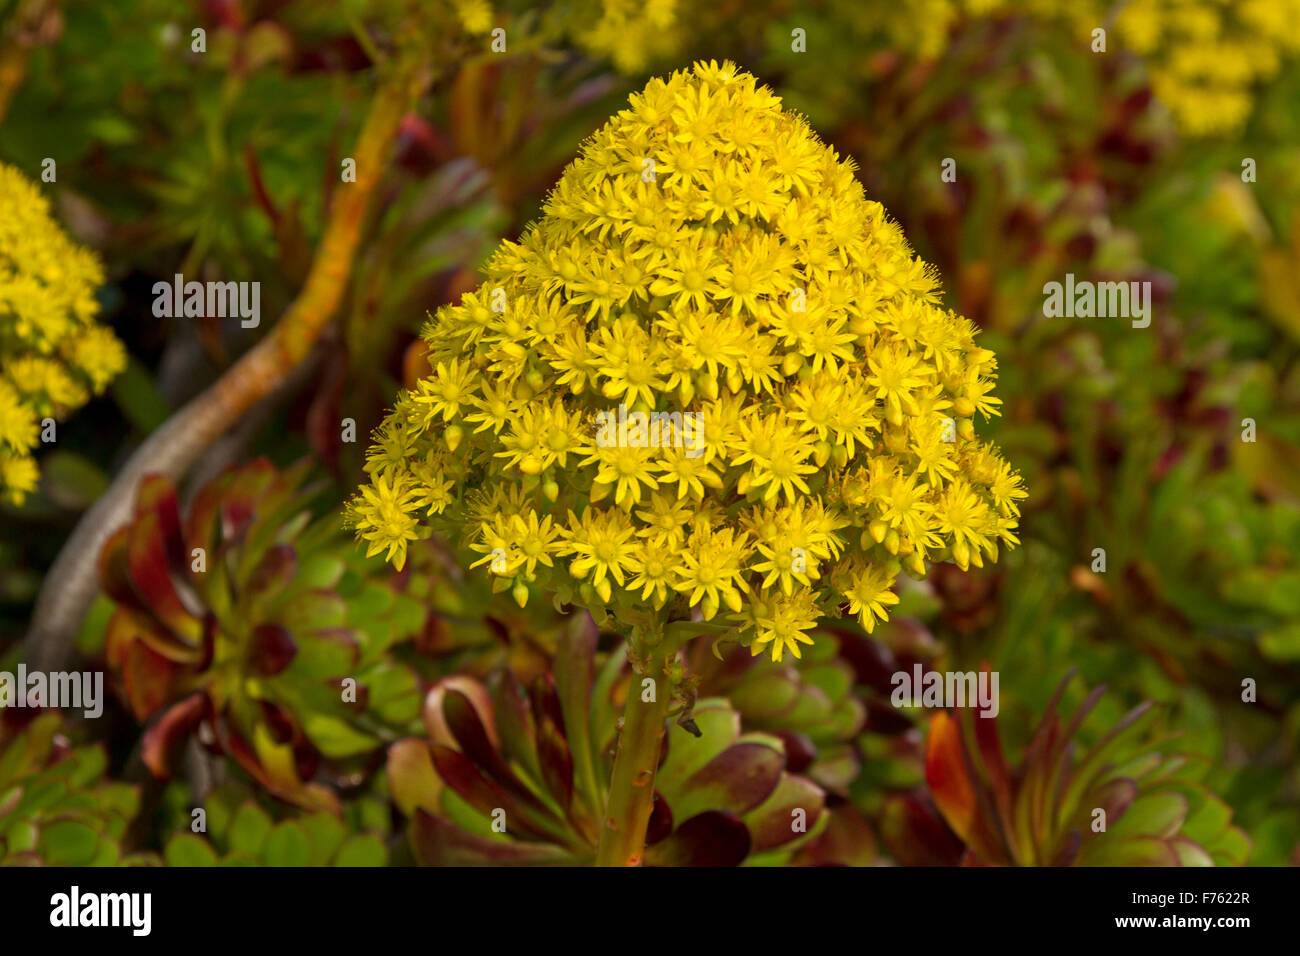 Large conical vivid yellow flower leaves of succulent aeonium large conical vivid yellow flower leaves of succulent aeonium arboreum tree houseleek an invasive weed species in australia mightylinksfo